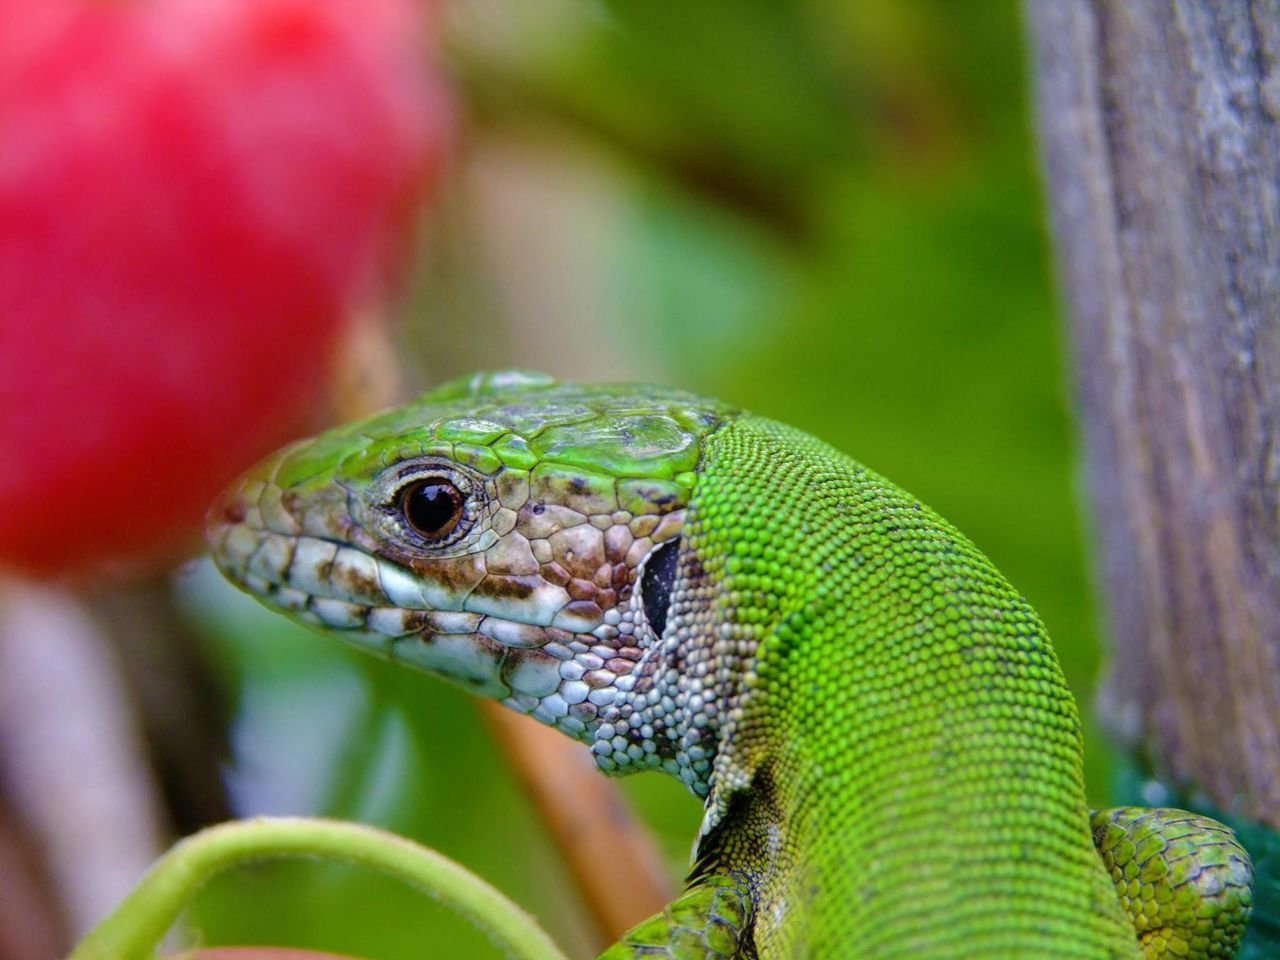 reptile, animals in the wild, one animal, animal themes, green color, animal wildlife, close-up, day, focus on foreground, outdoors, nature, no people